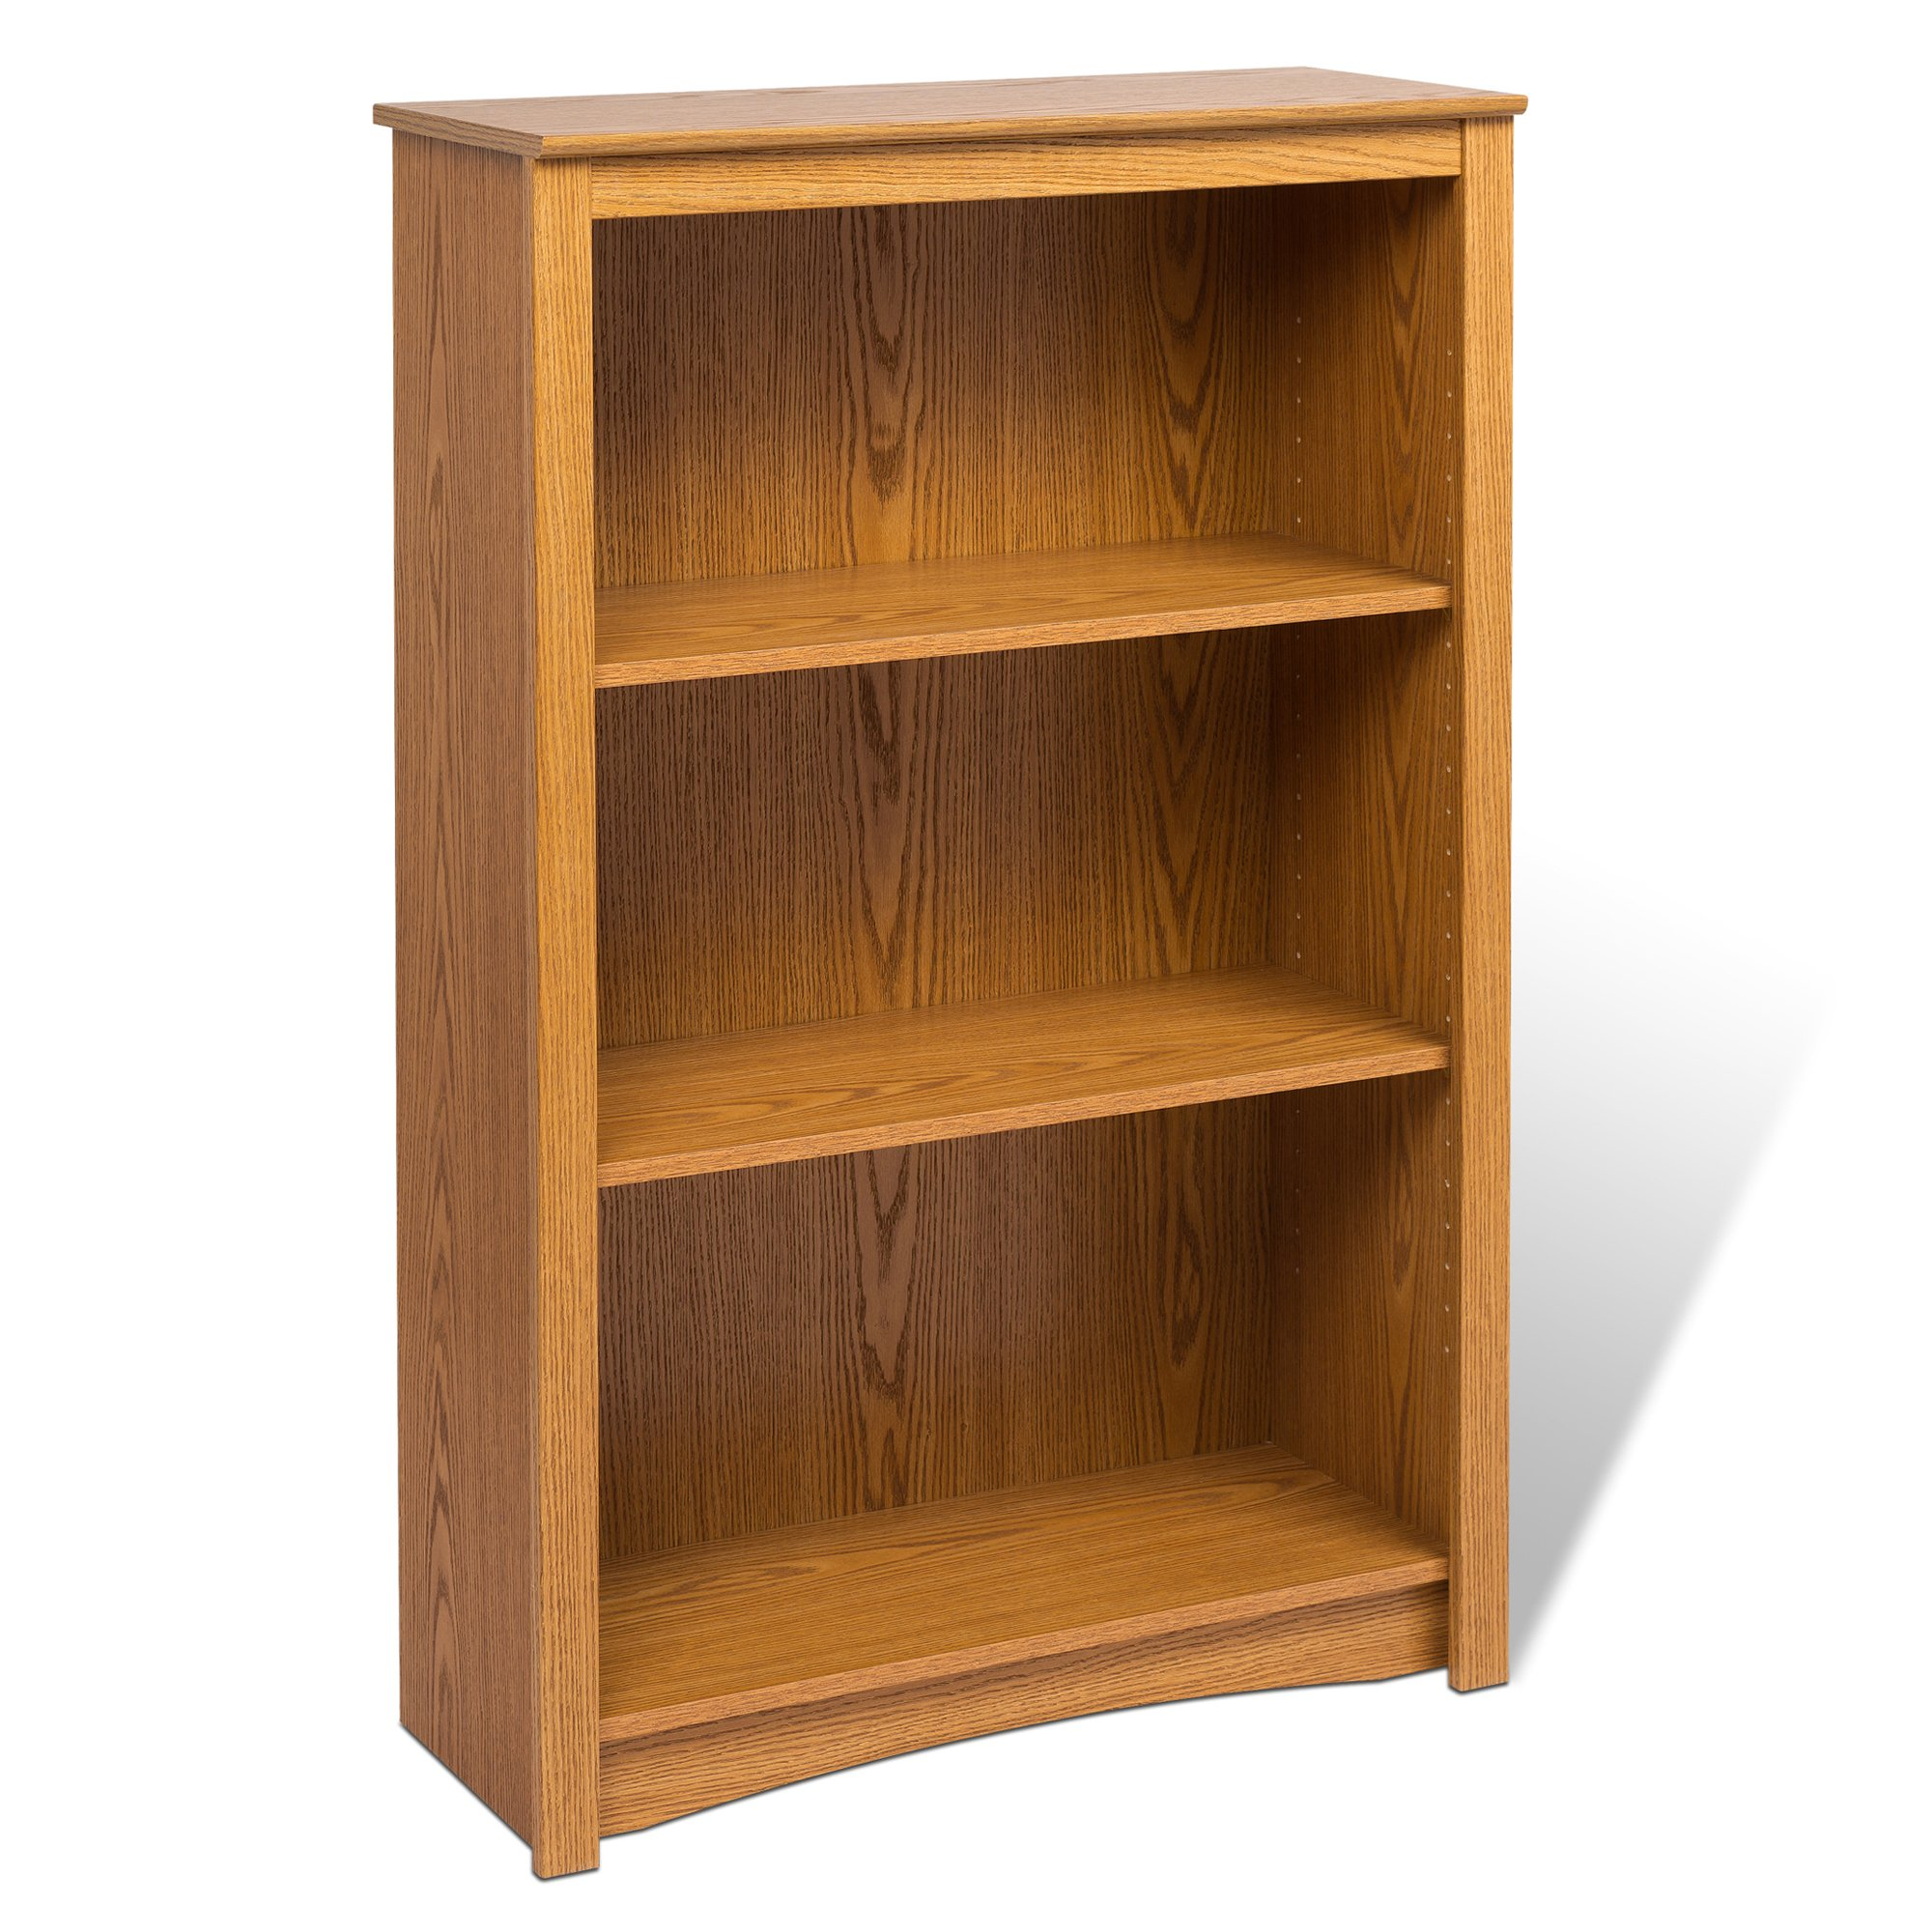 Prepac Oak 4-shelf Bookcase